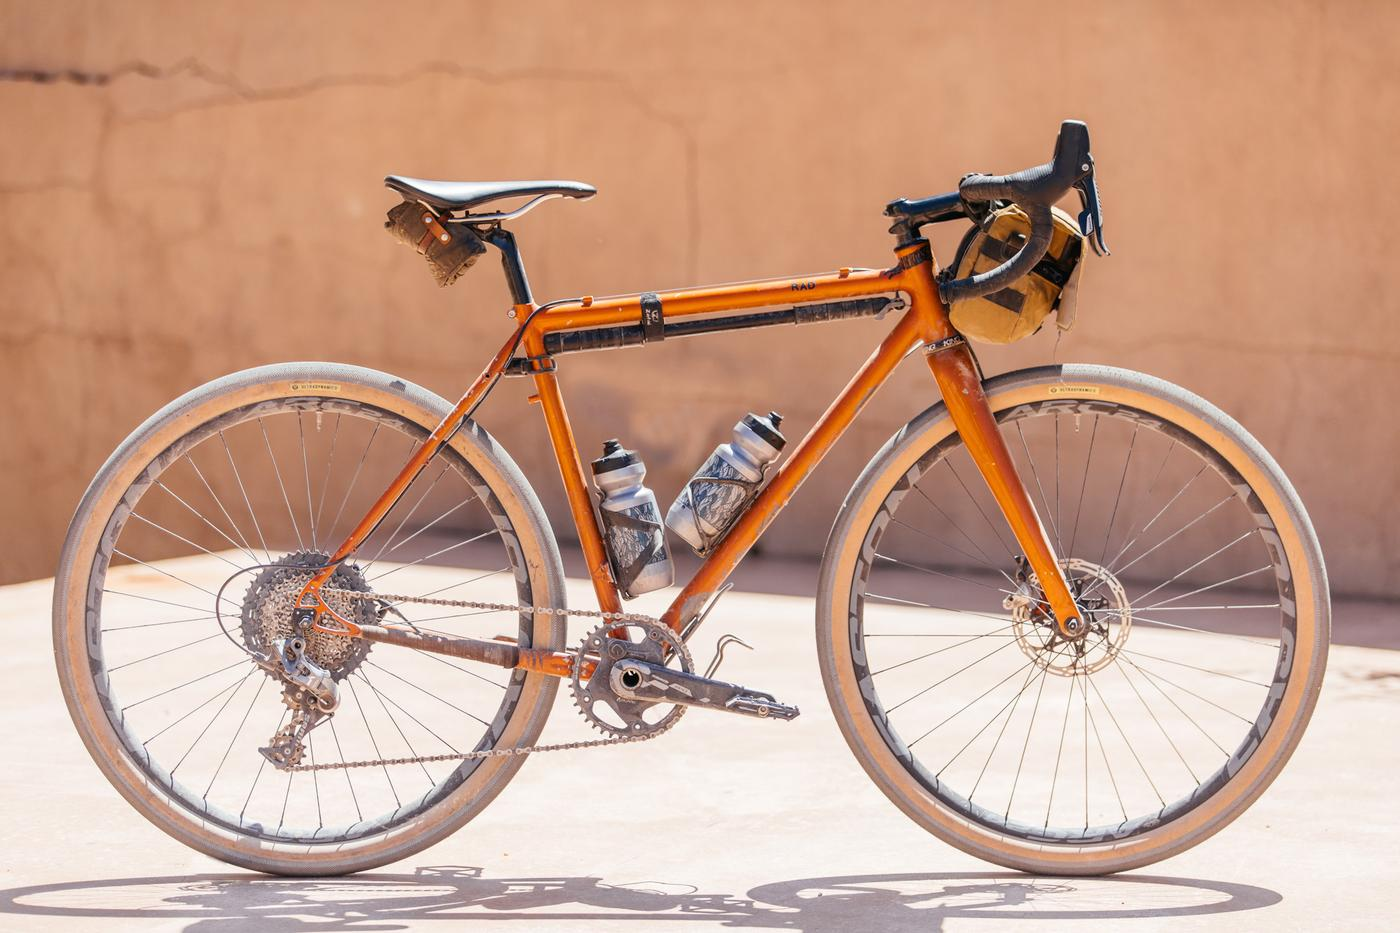 Gideon's Icarus All Road Bike is a Vessel to Experience Silence